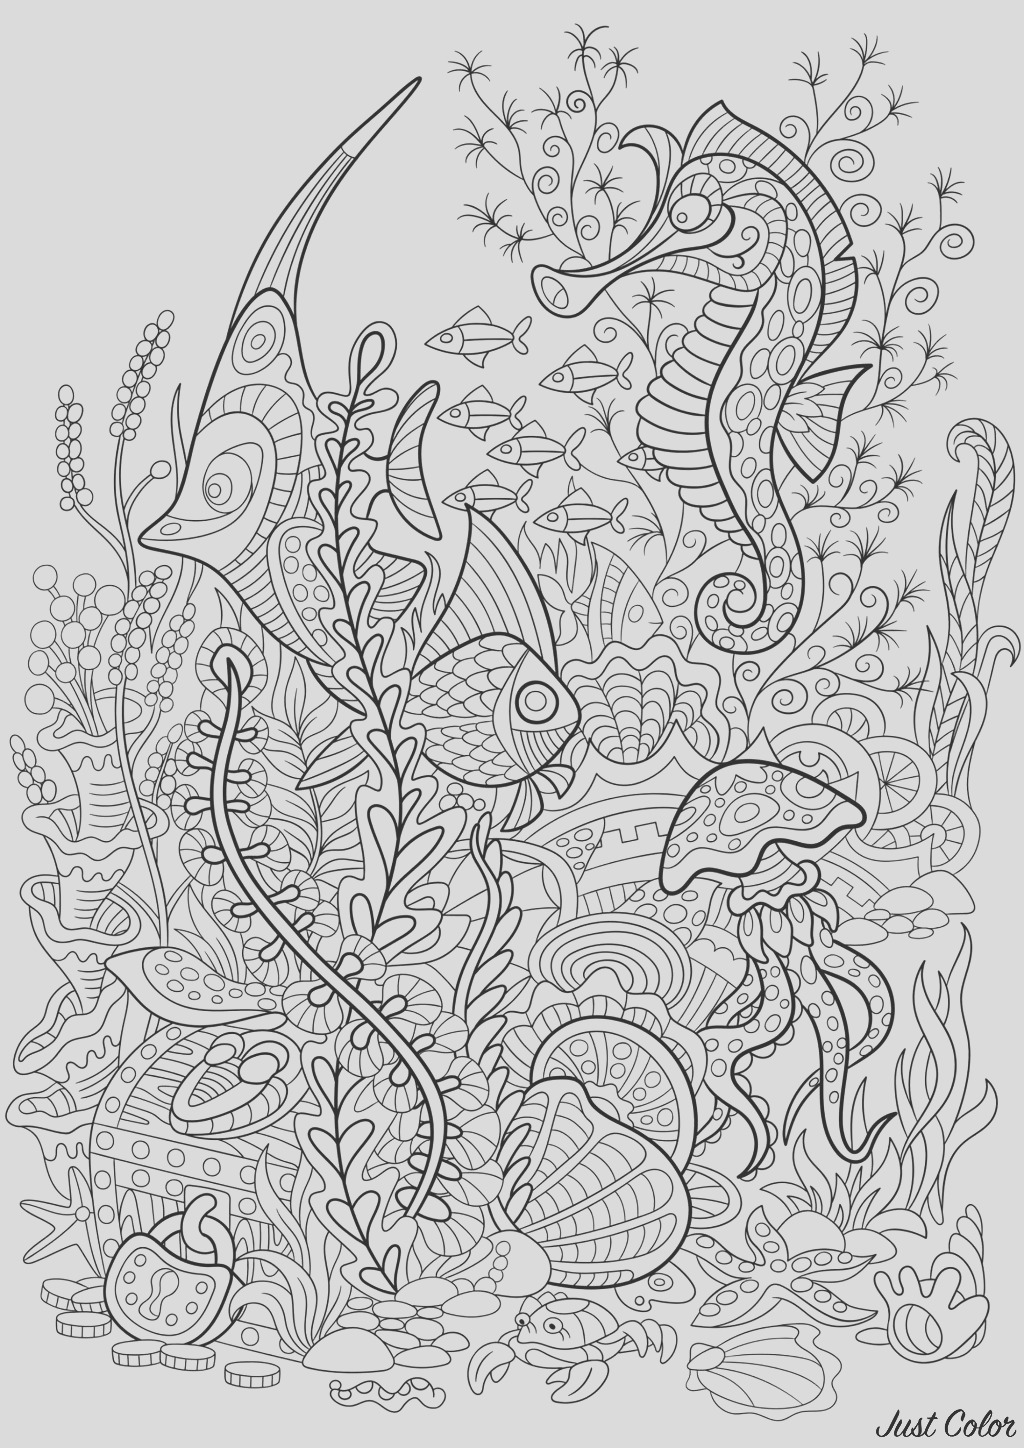 image=water worlds coloring seaworld fish sea horse 1